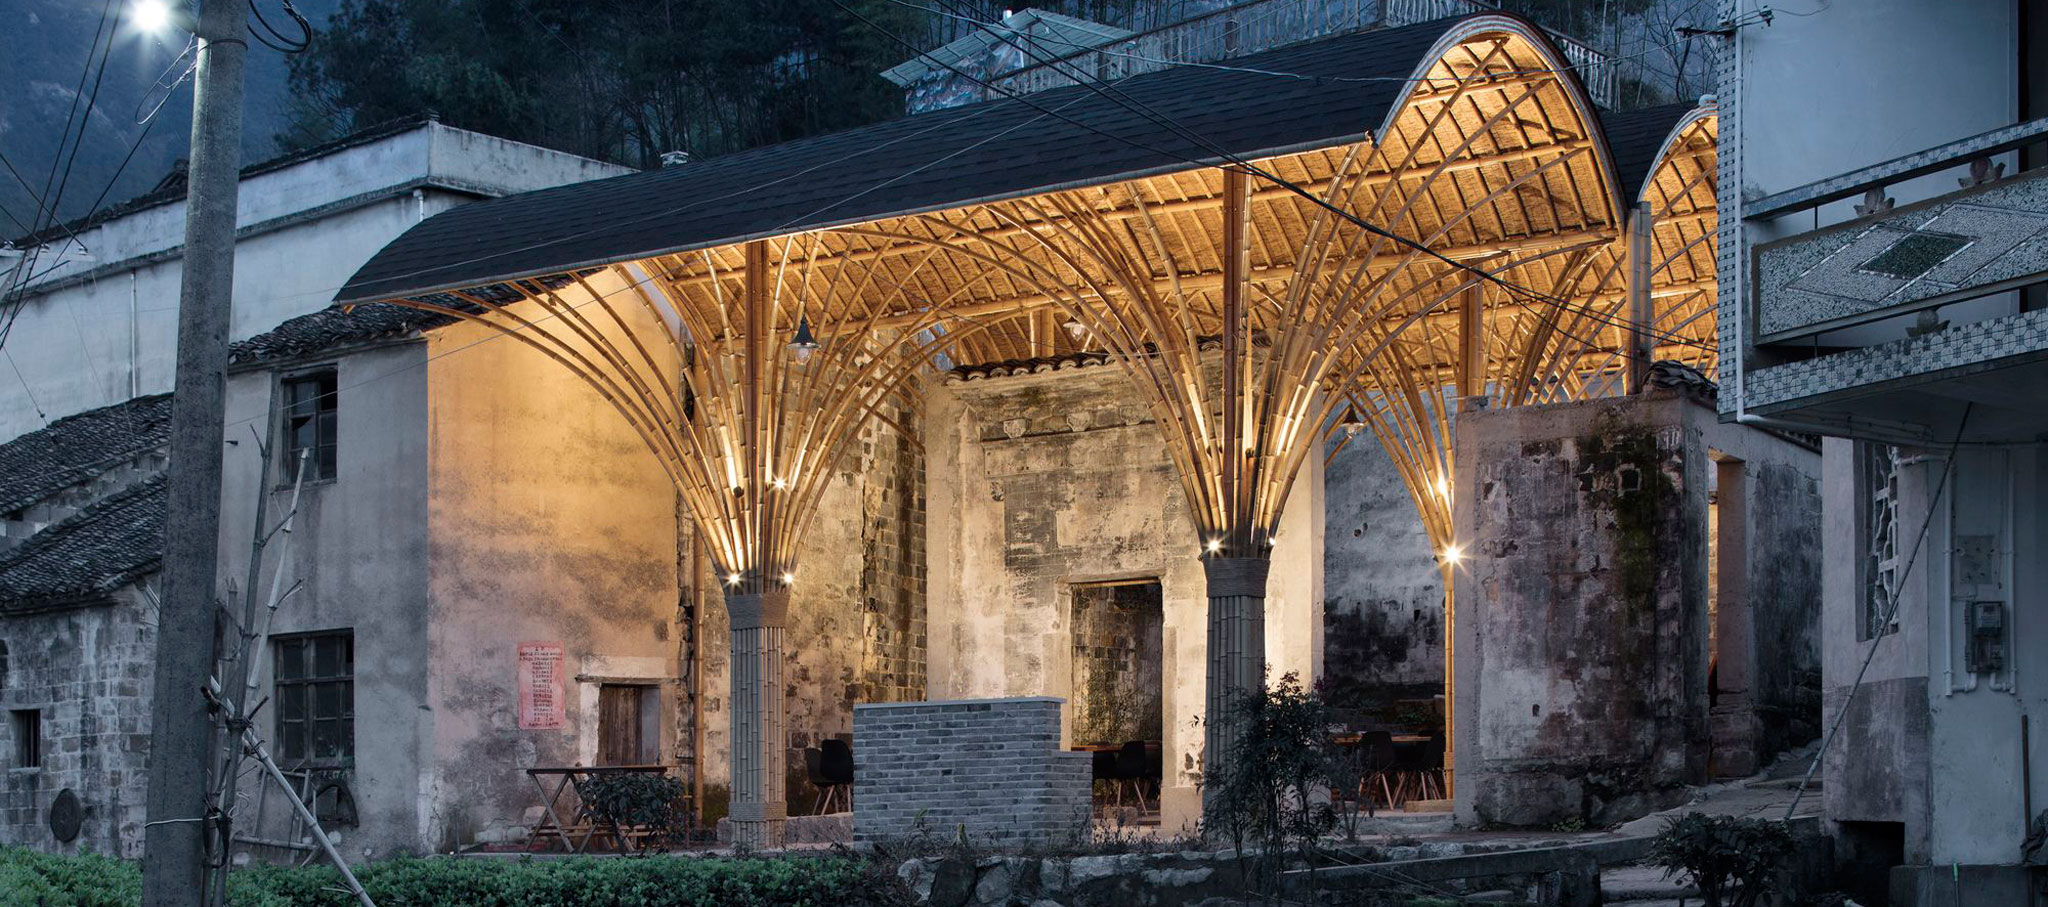 Night scene with bamboo grove. Village Lounge of Shangcun by SUP Atelier. Photograph by Xia Zhi